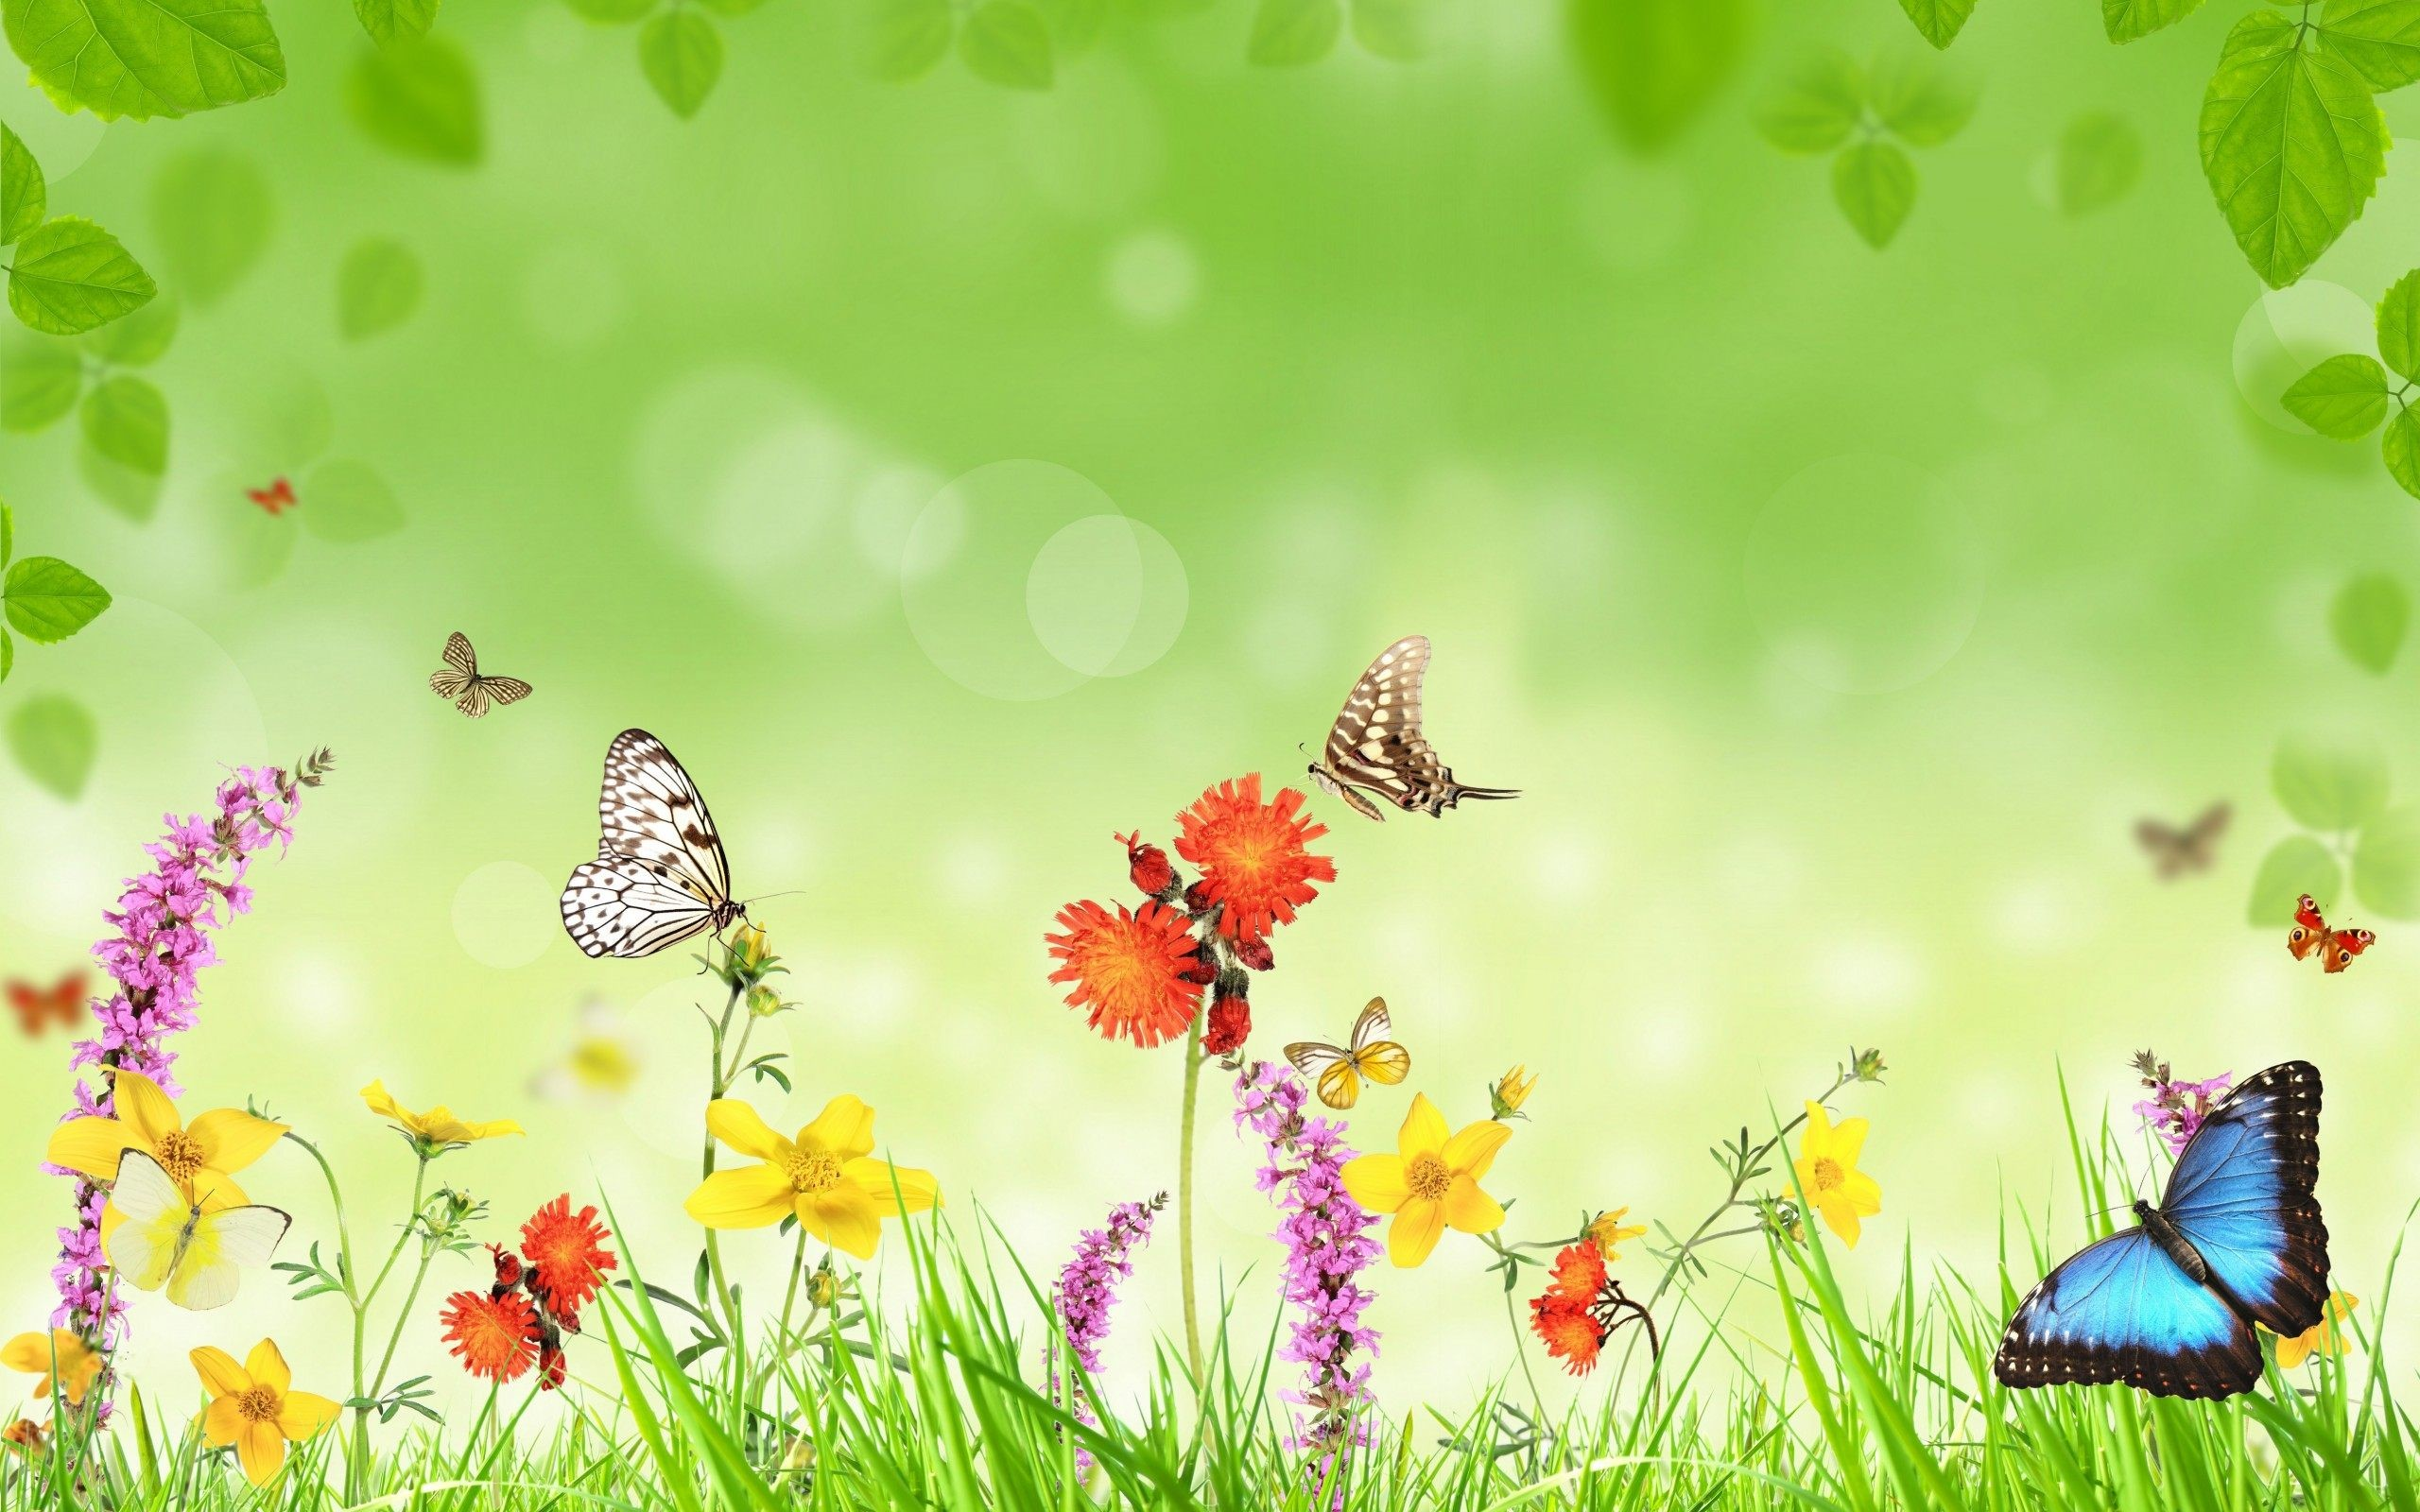 2560x1600 ... Flower With Butterfly Wallpaper HD Download High Quality ...